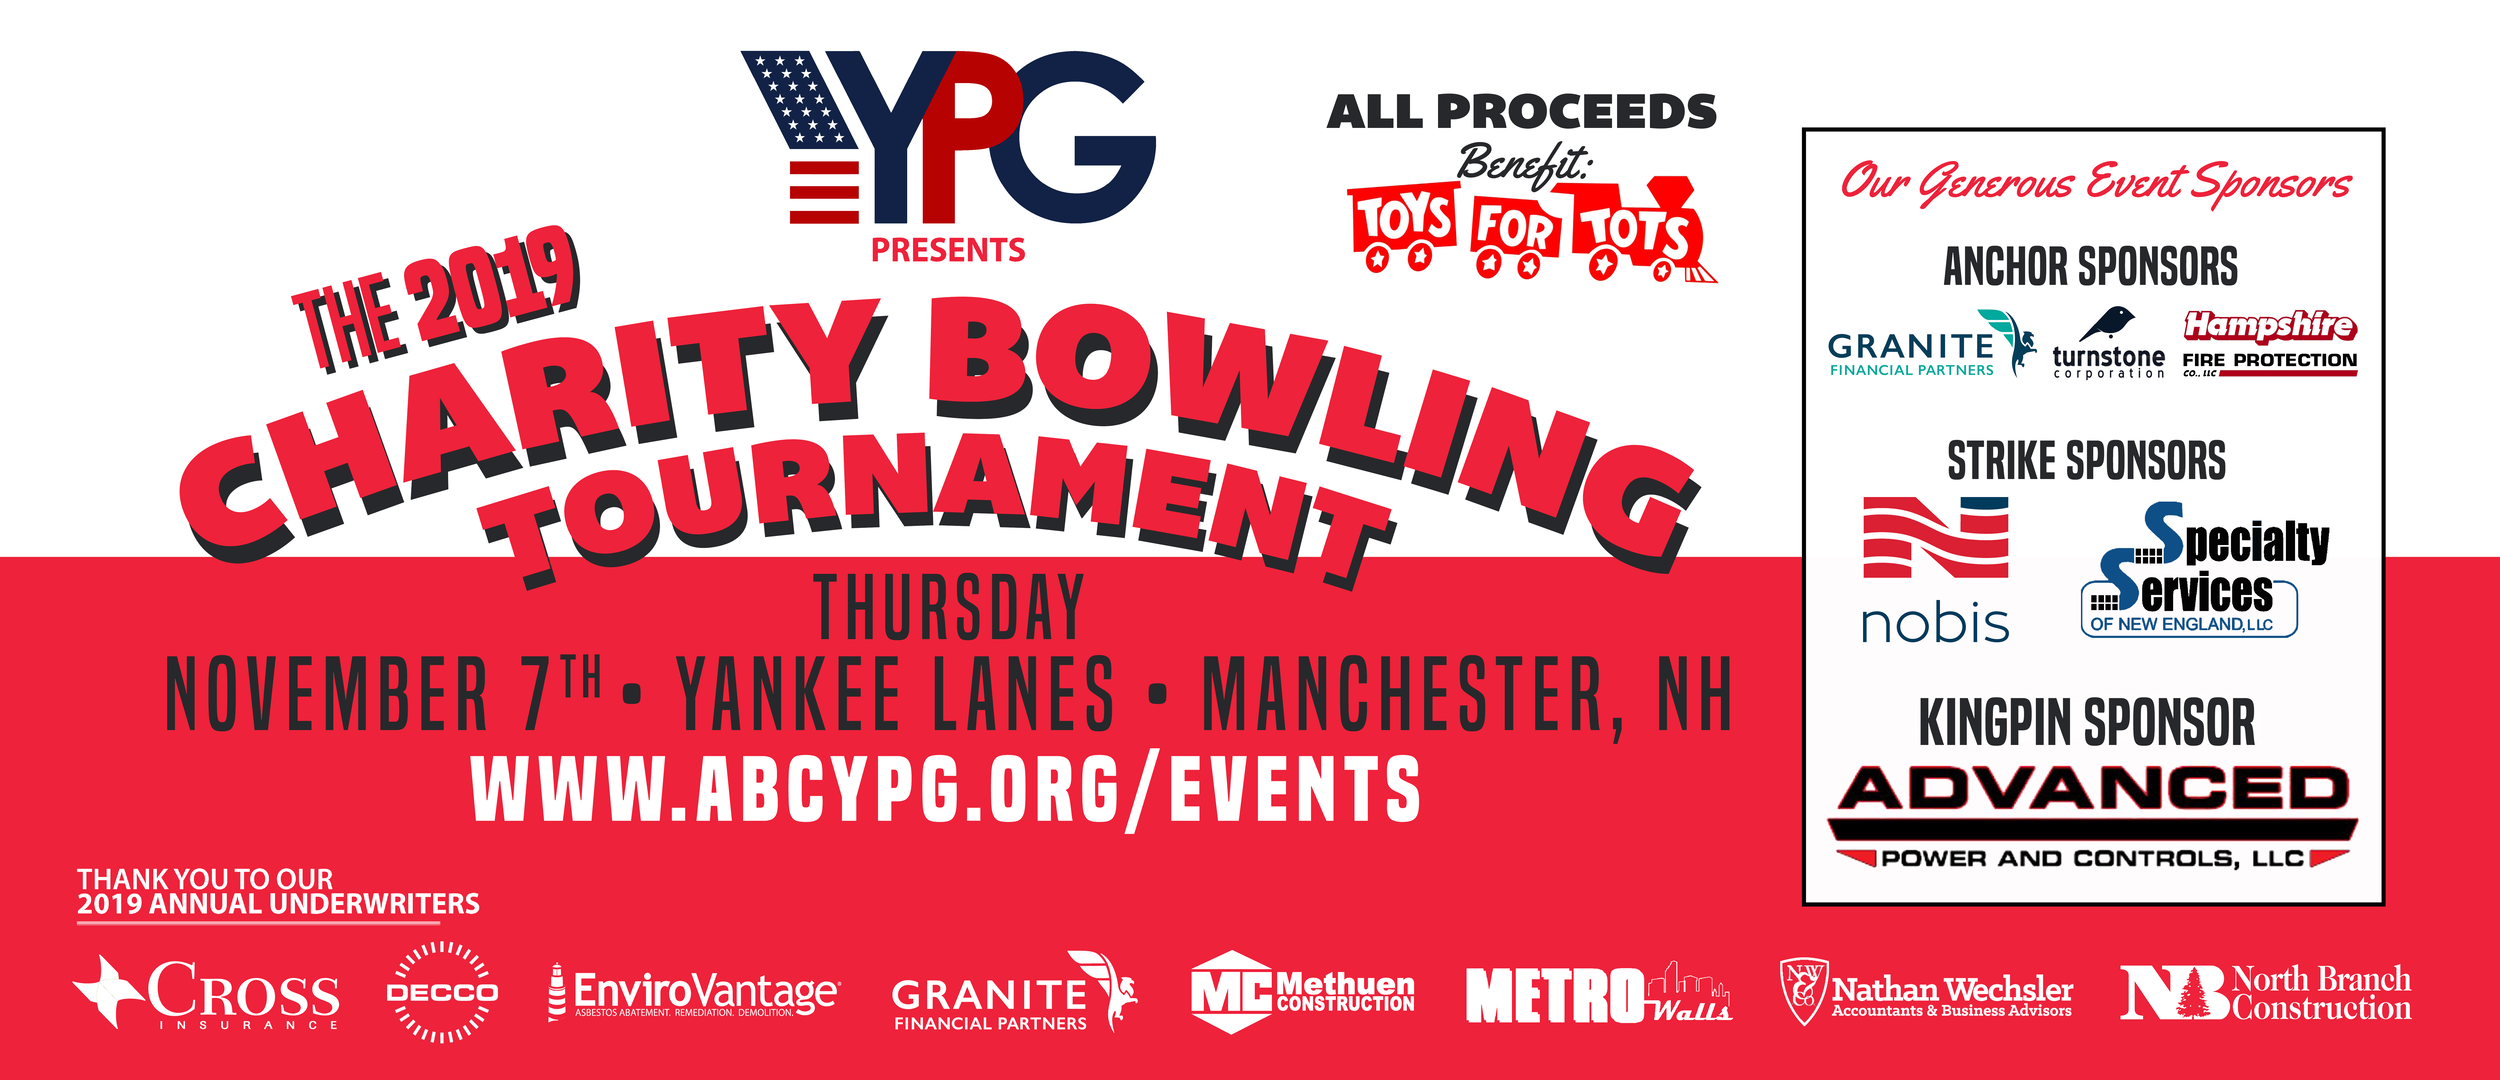 2019-11 Charity Bowling Tournament - WEB MEDIA.png